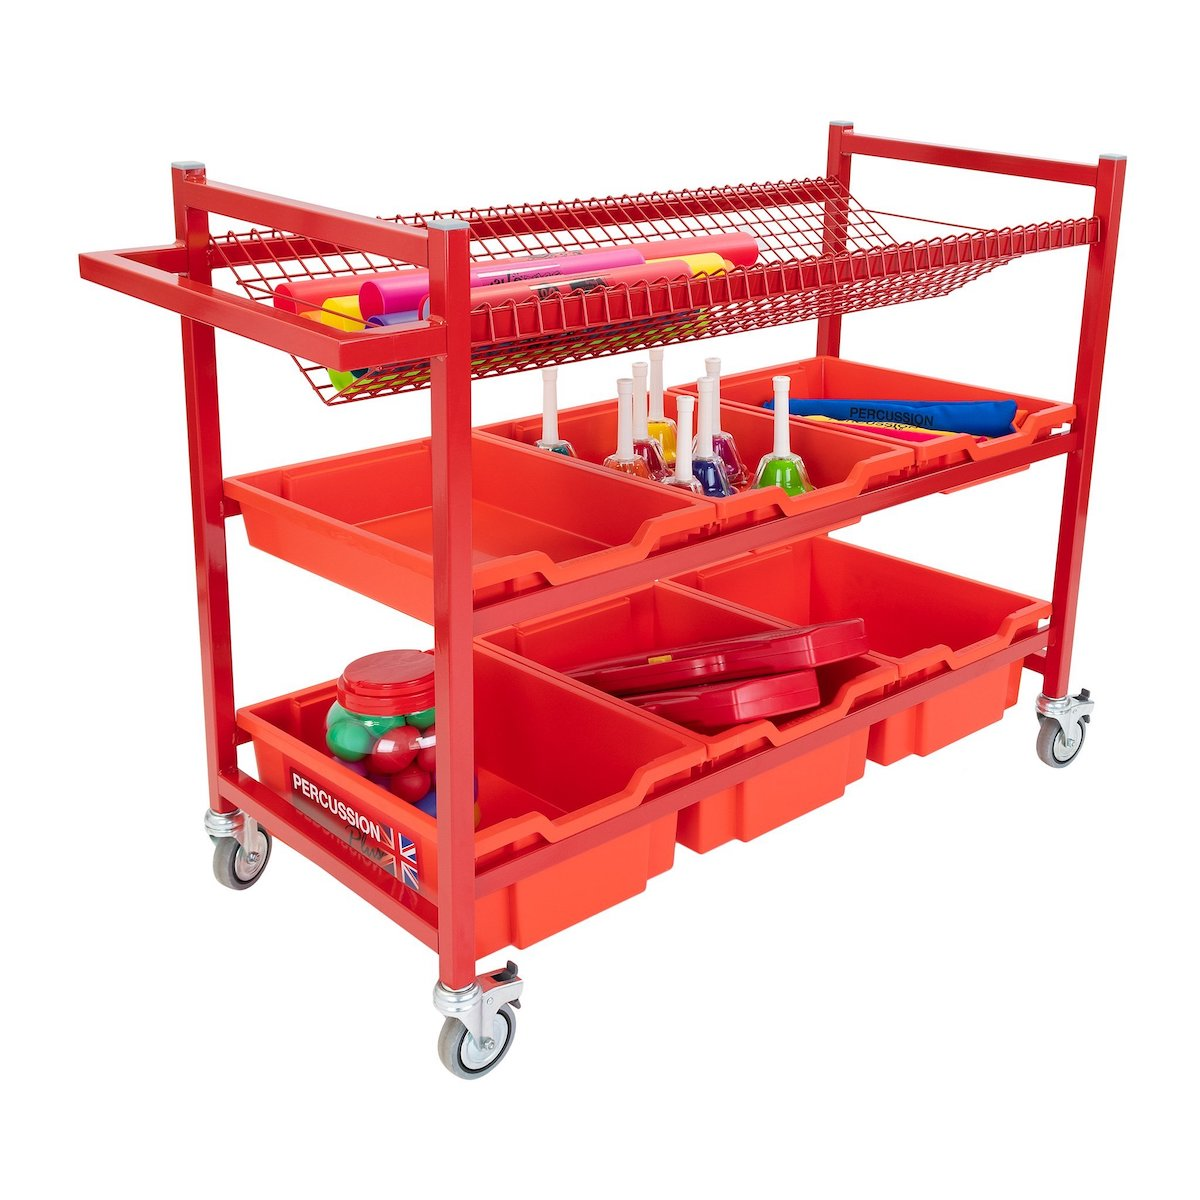 Percussion Plus Mobile Instrument Trolley